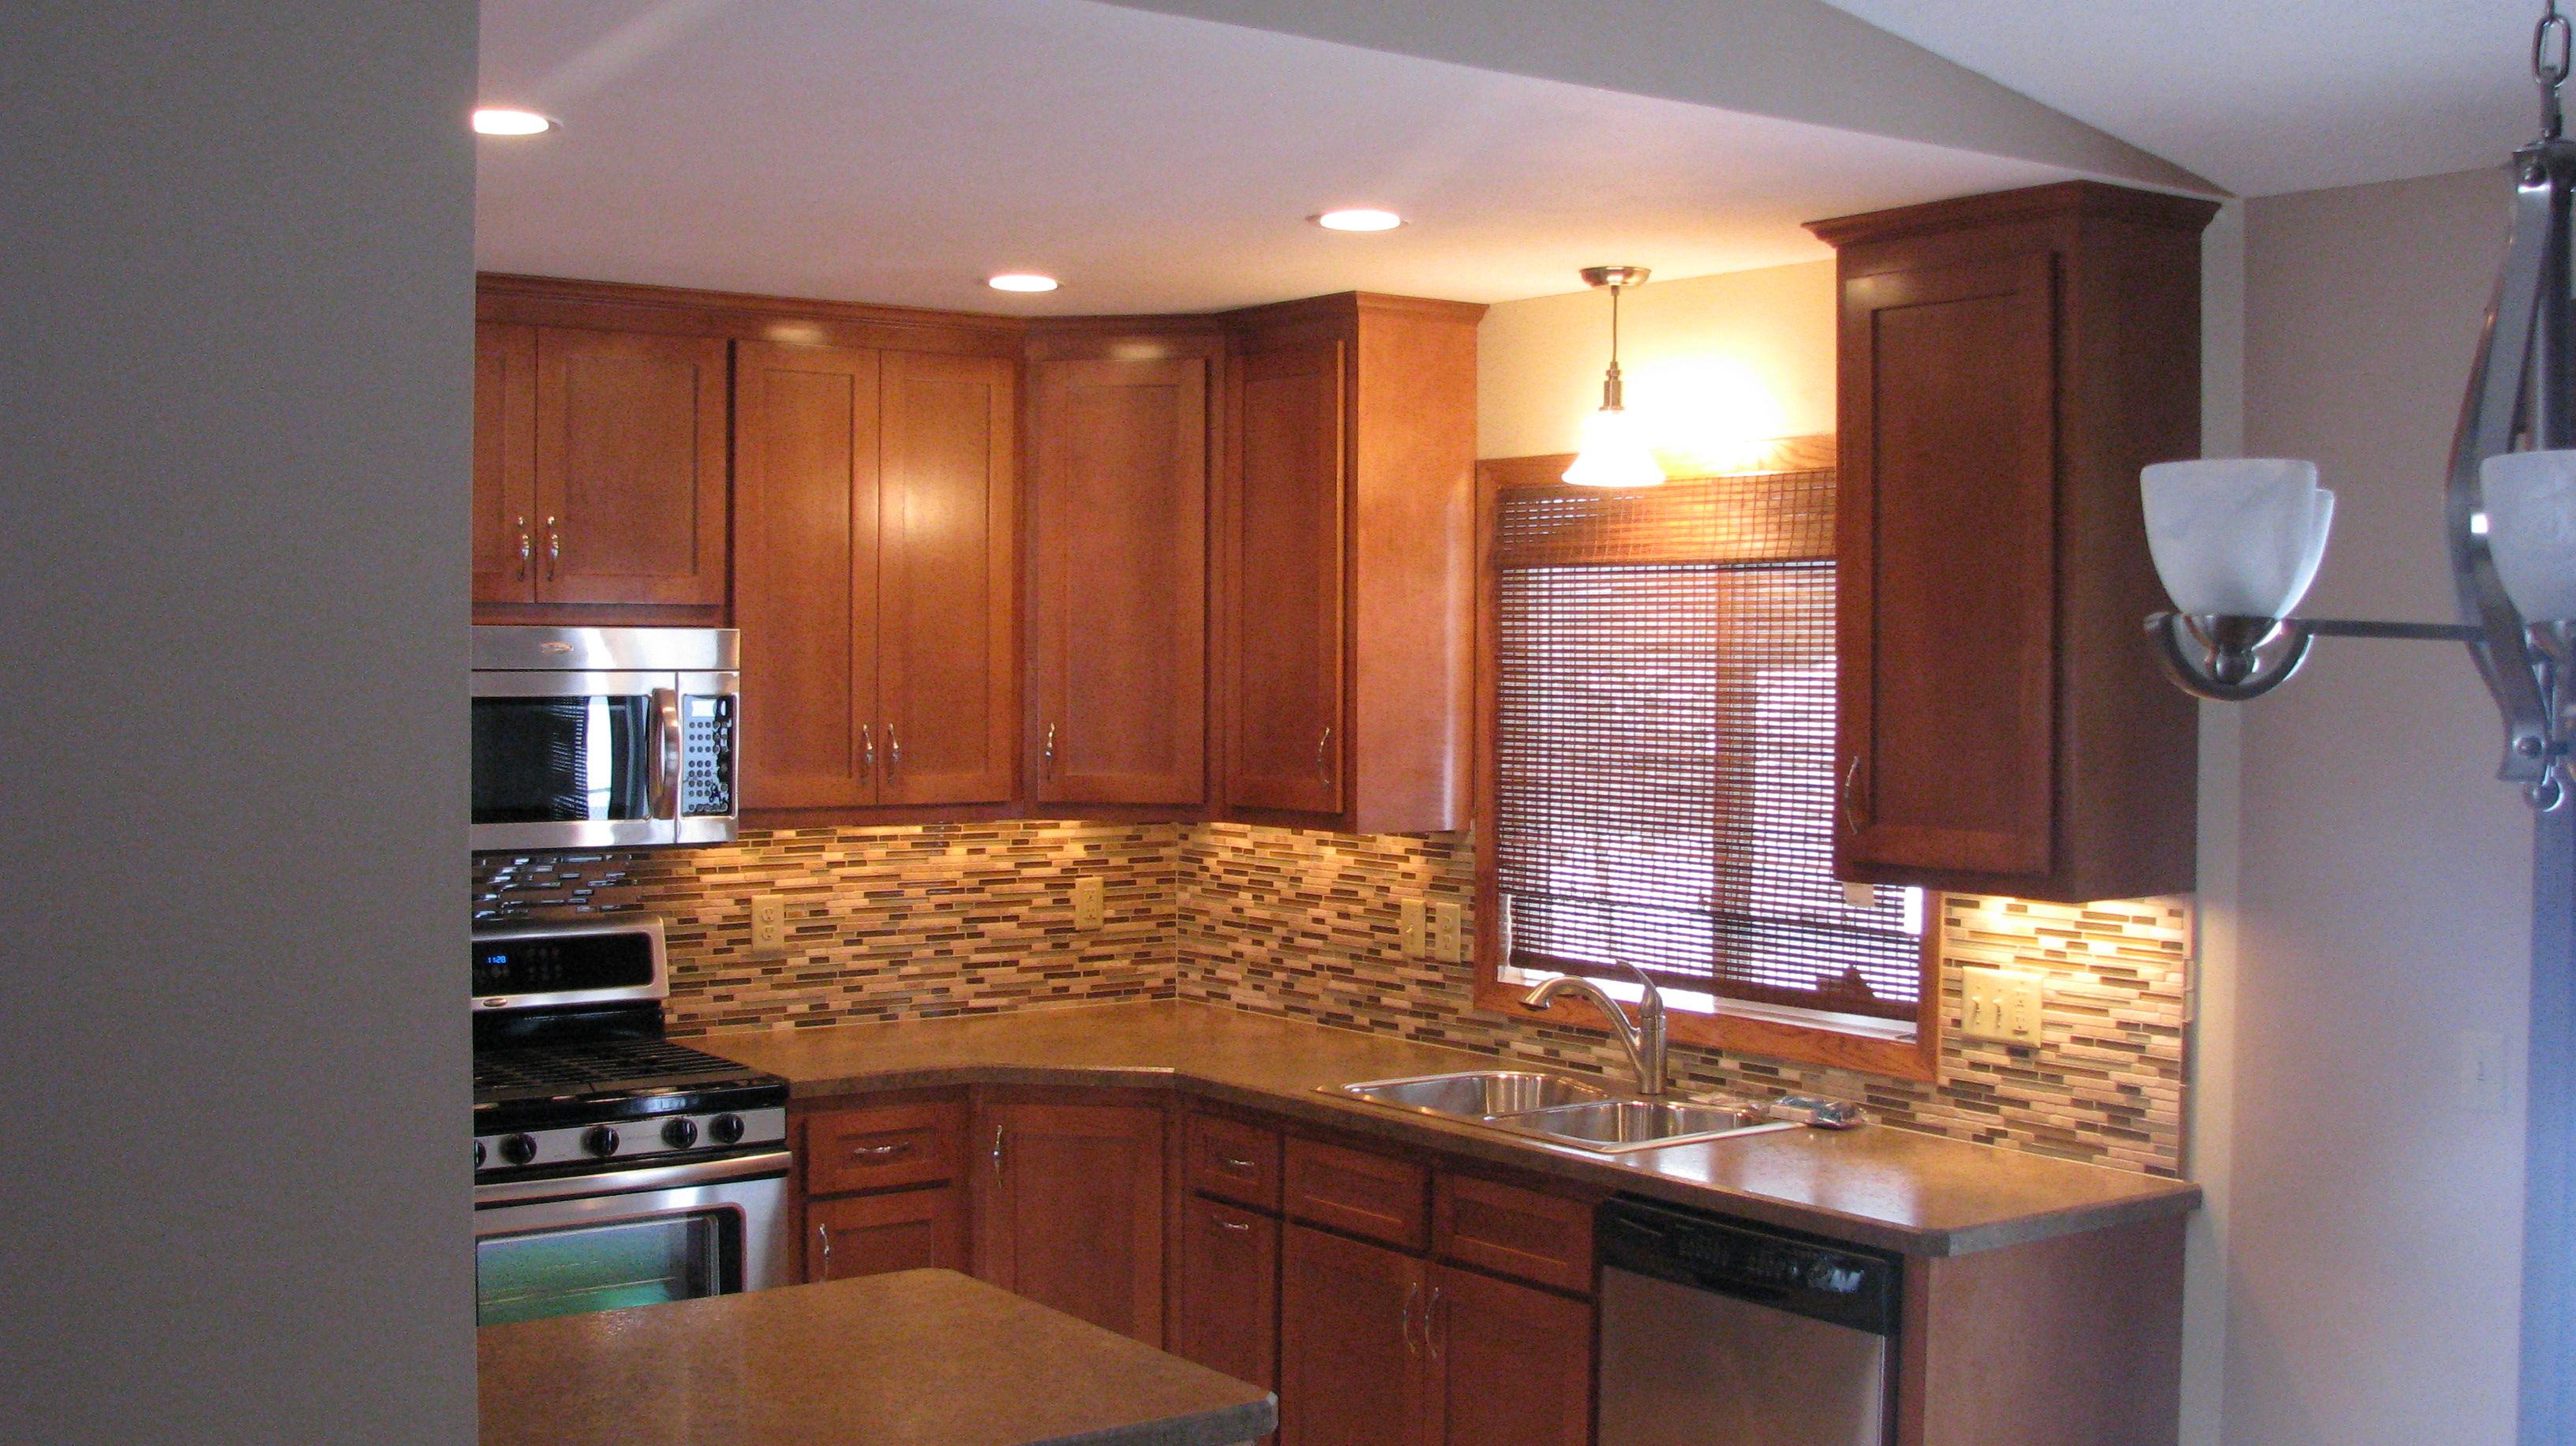 Split entry kitchen remodel remodeling kitchen remodeling minneapolis bathroom - Remodeling kitchen ideas ...